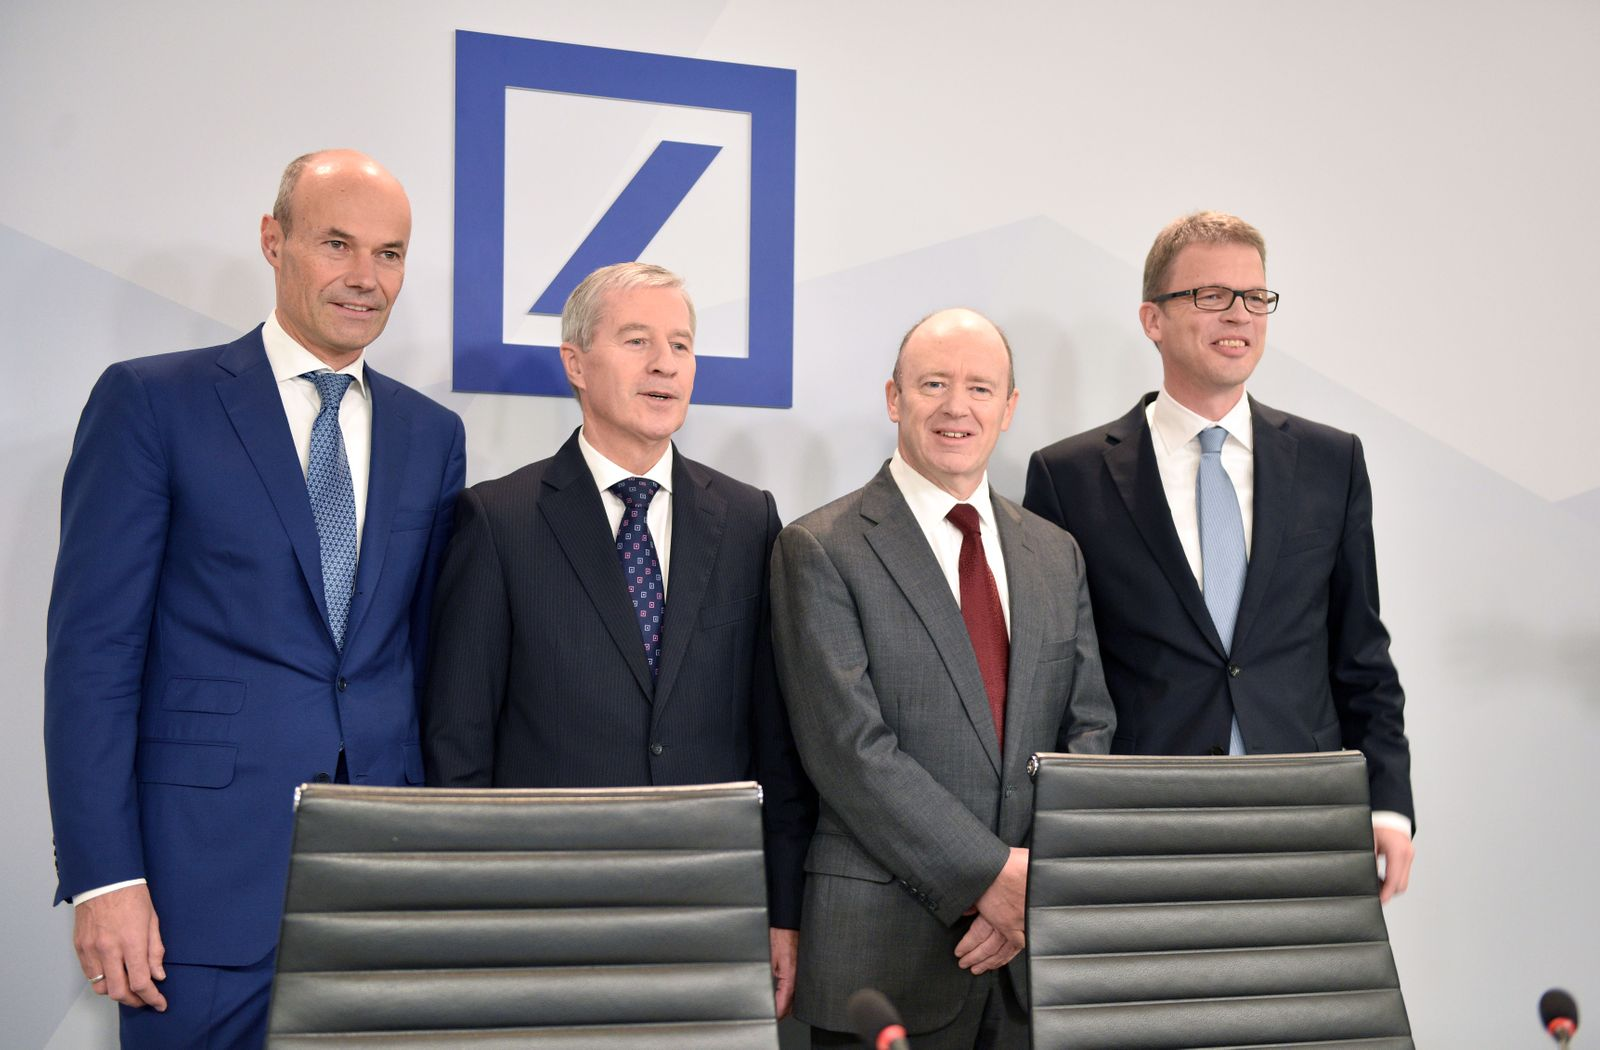 Deutsche Bank / members of the executive board